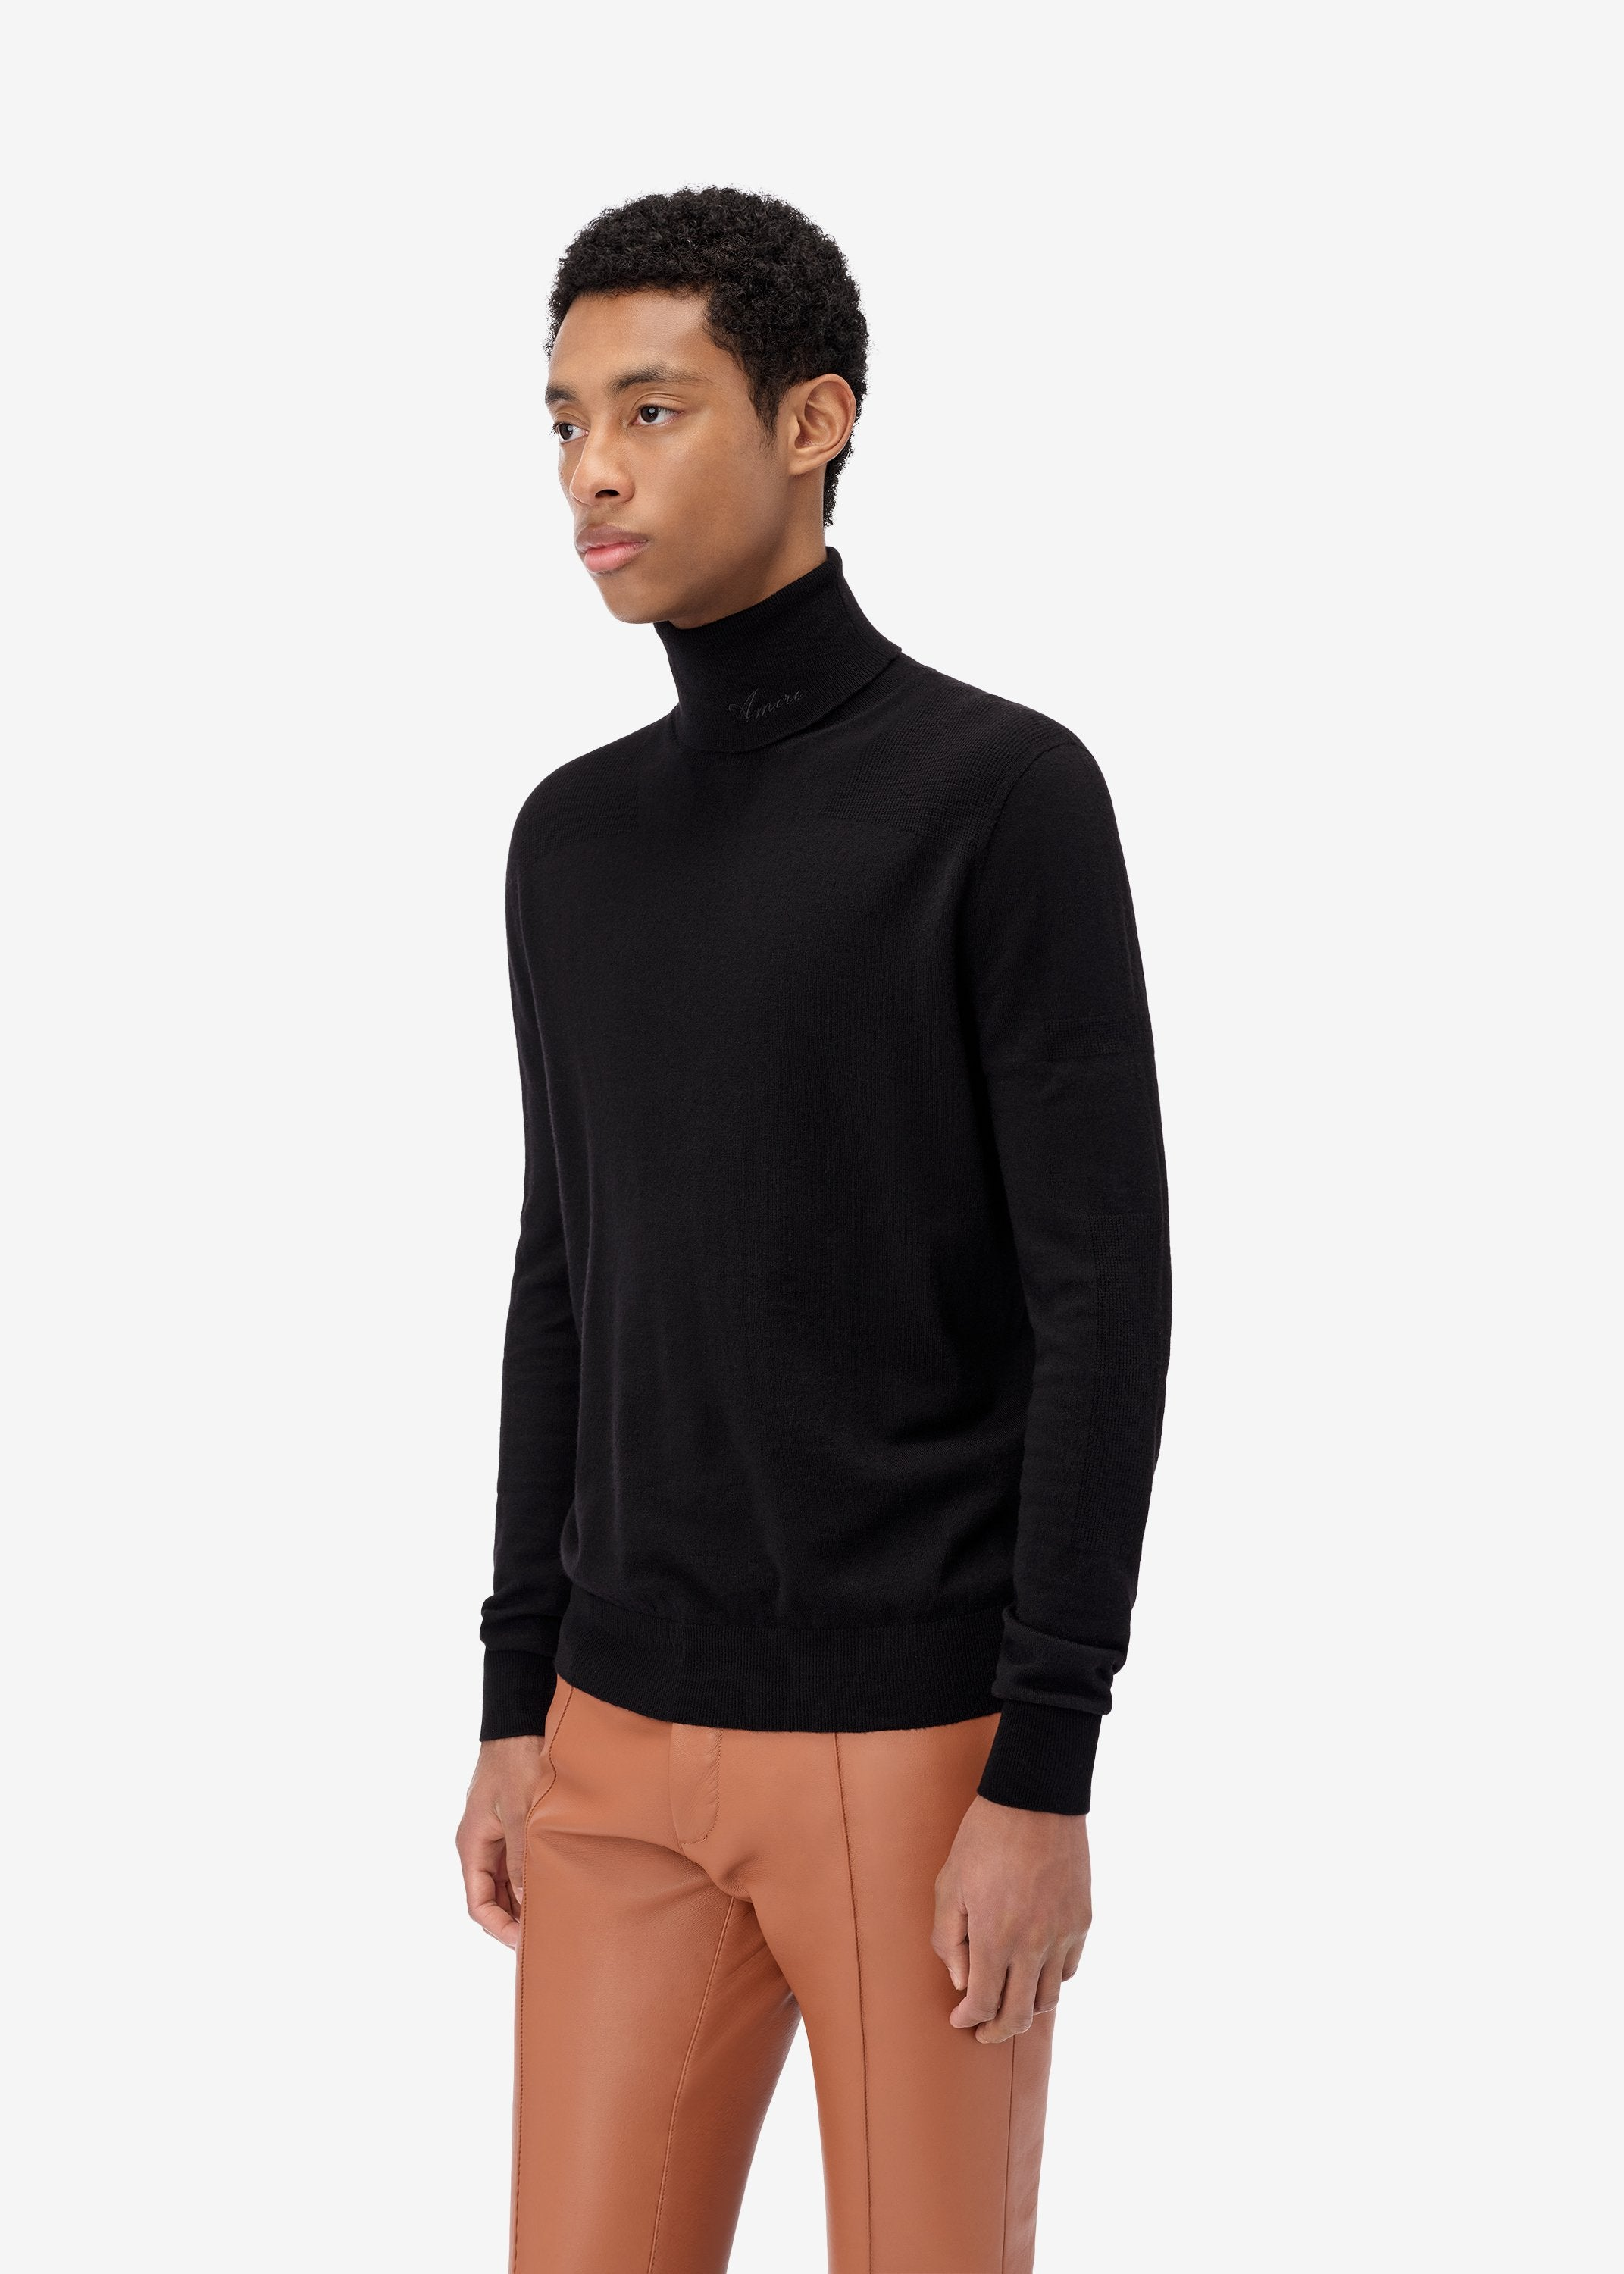 fitted-wool-turtleneck-black-image-3